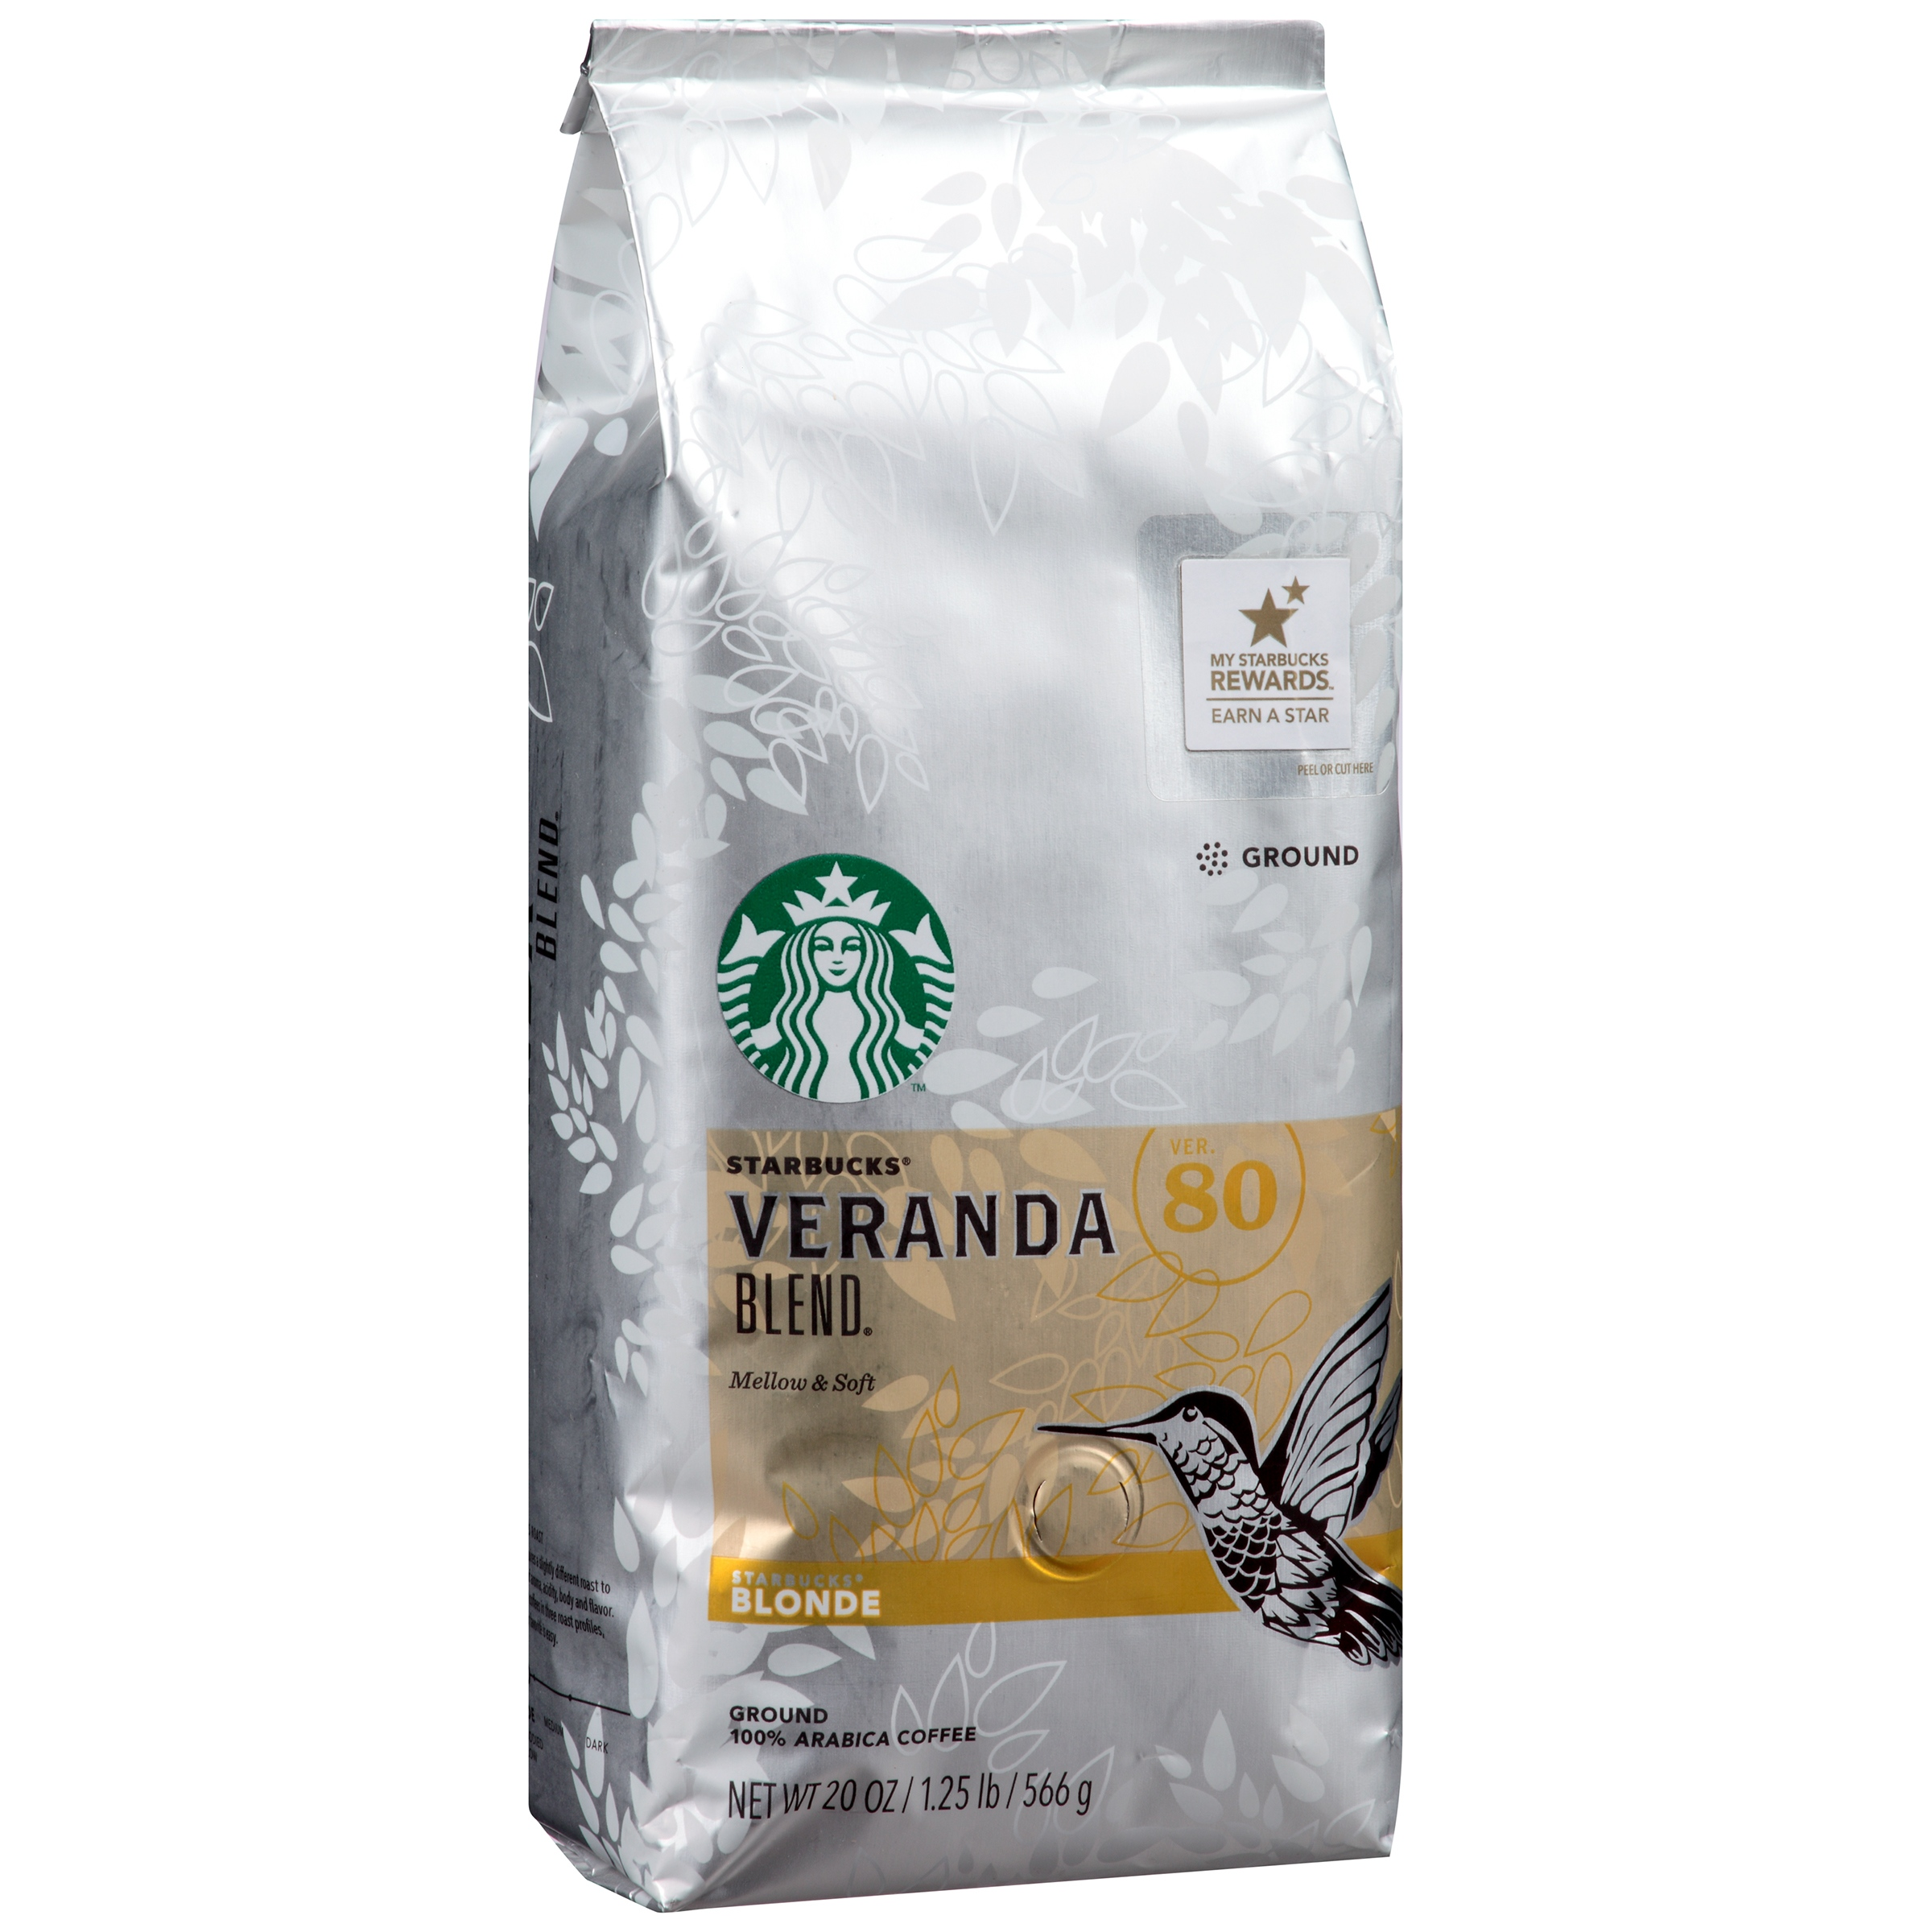 Starbucks Veranda Blend Ground 100% Arabica Coffee, 20 oz